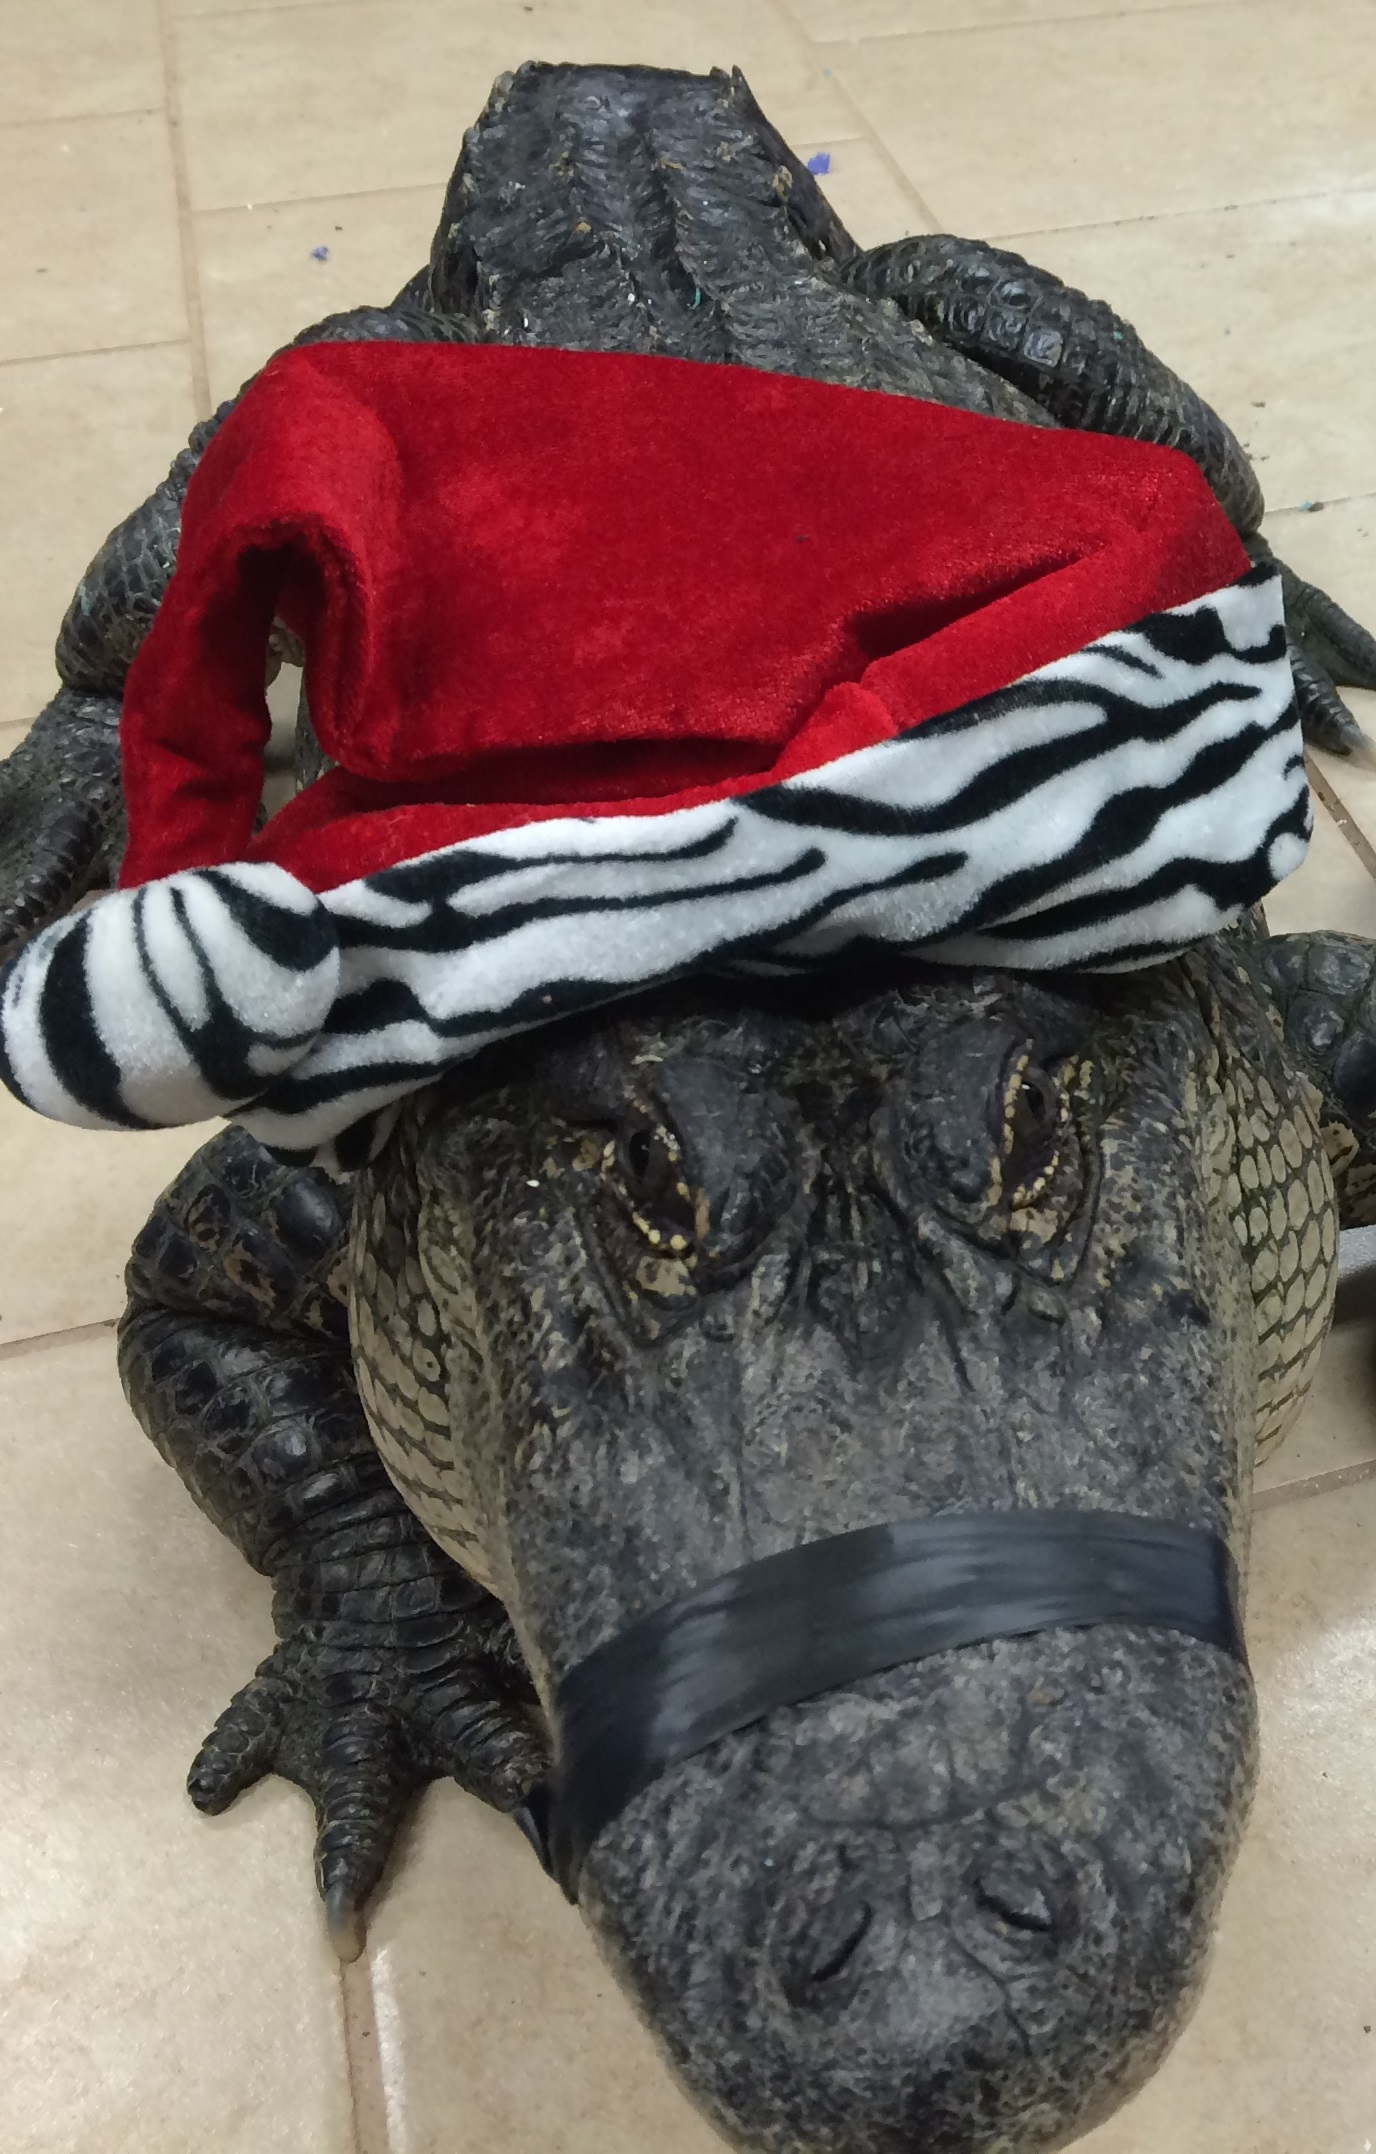 1PM Special Croc Holiday Tour